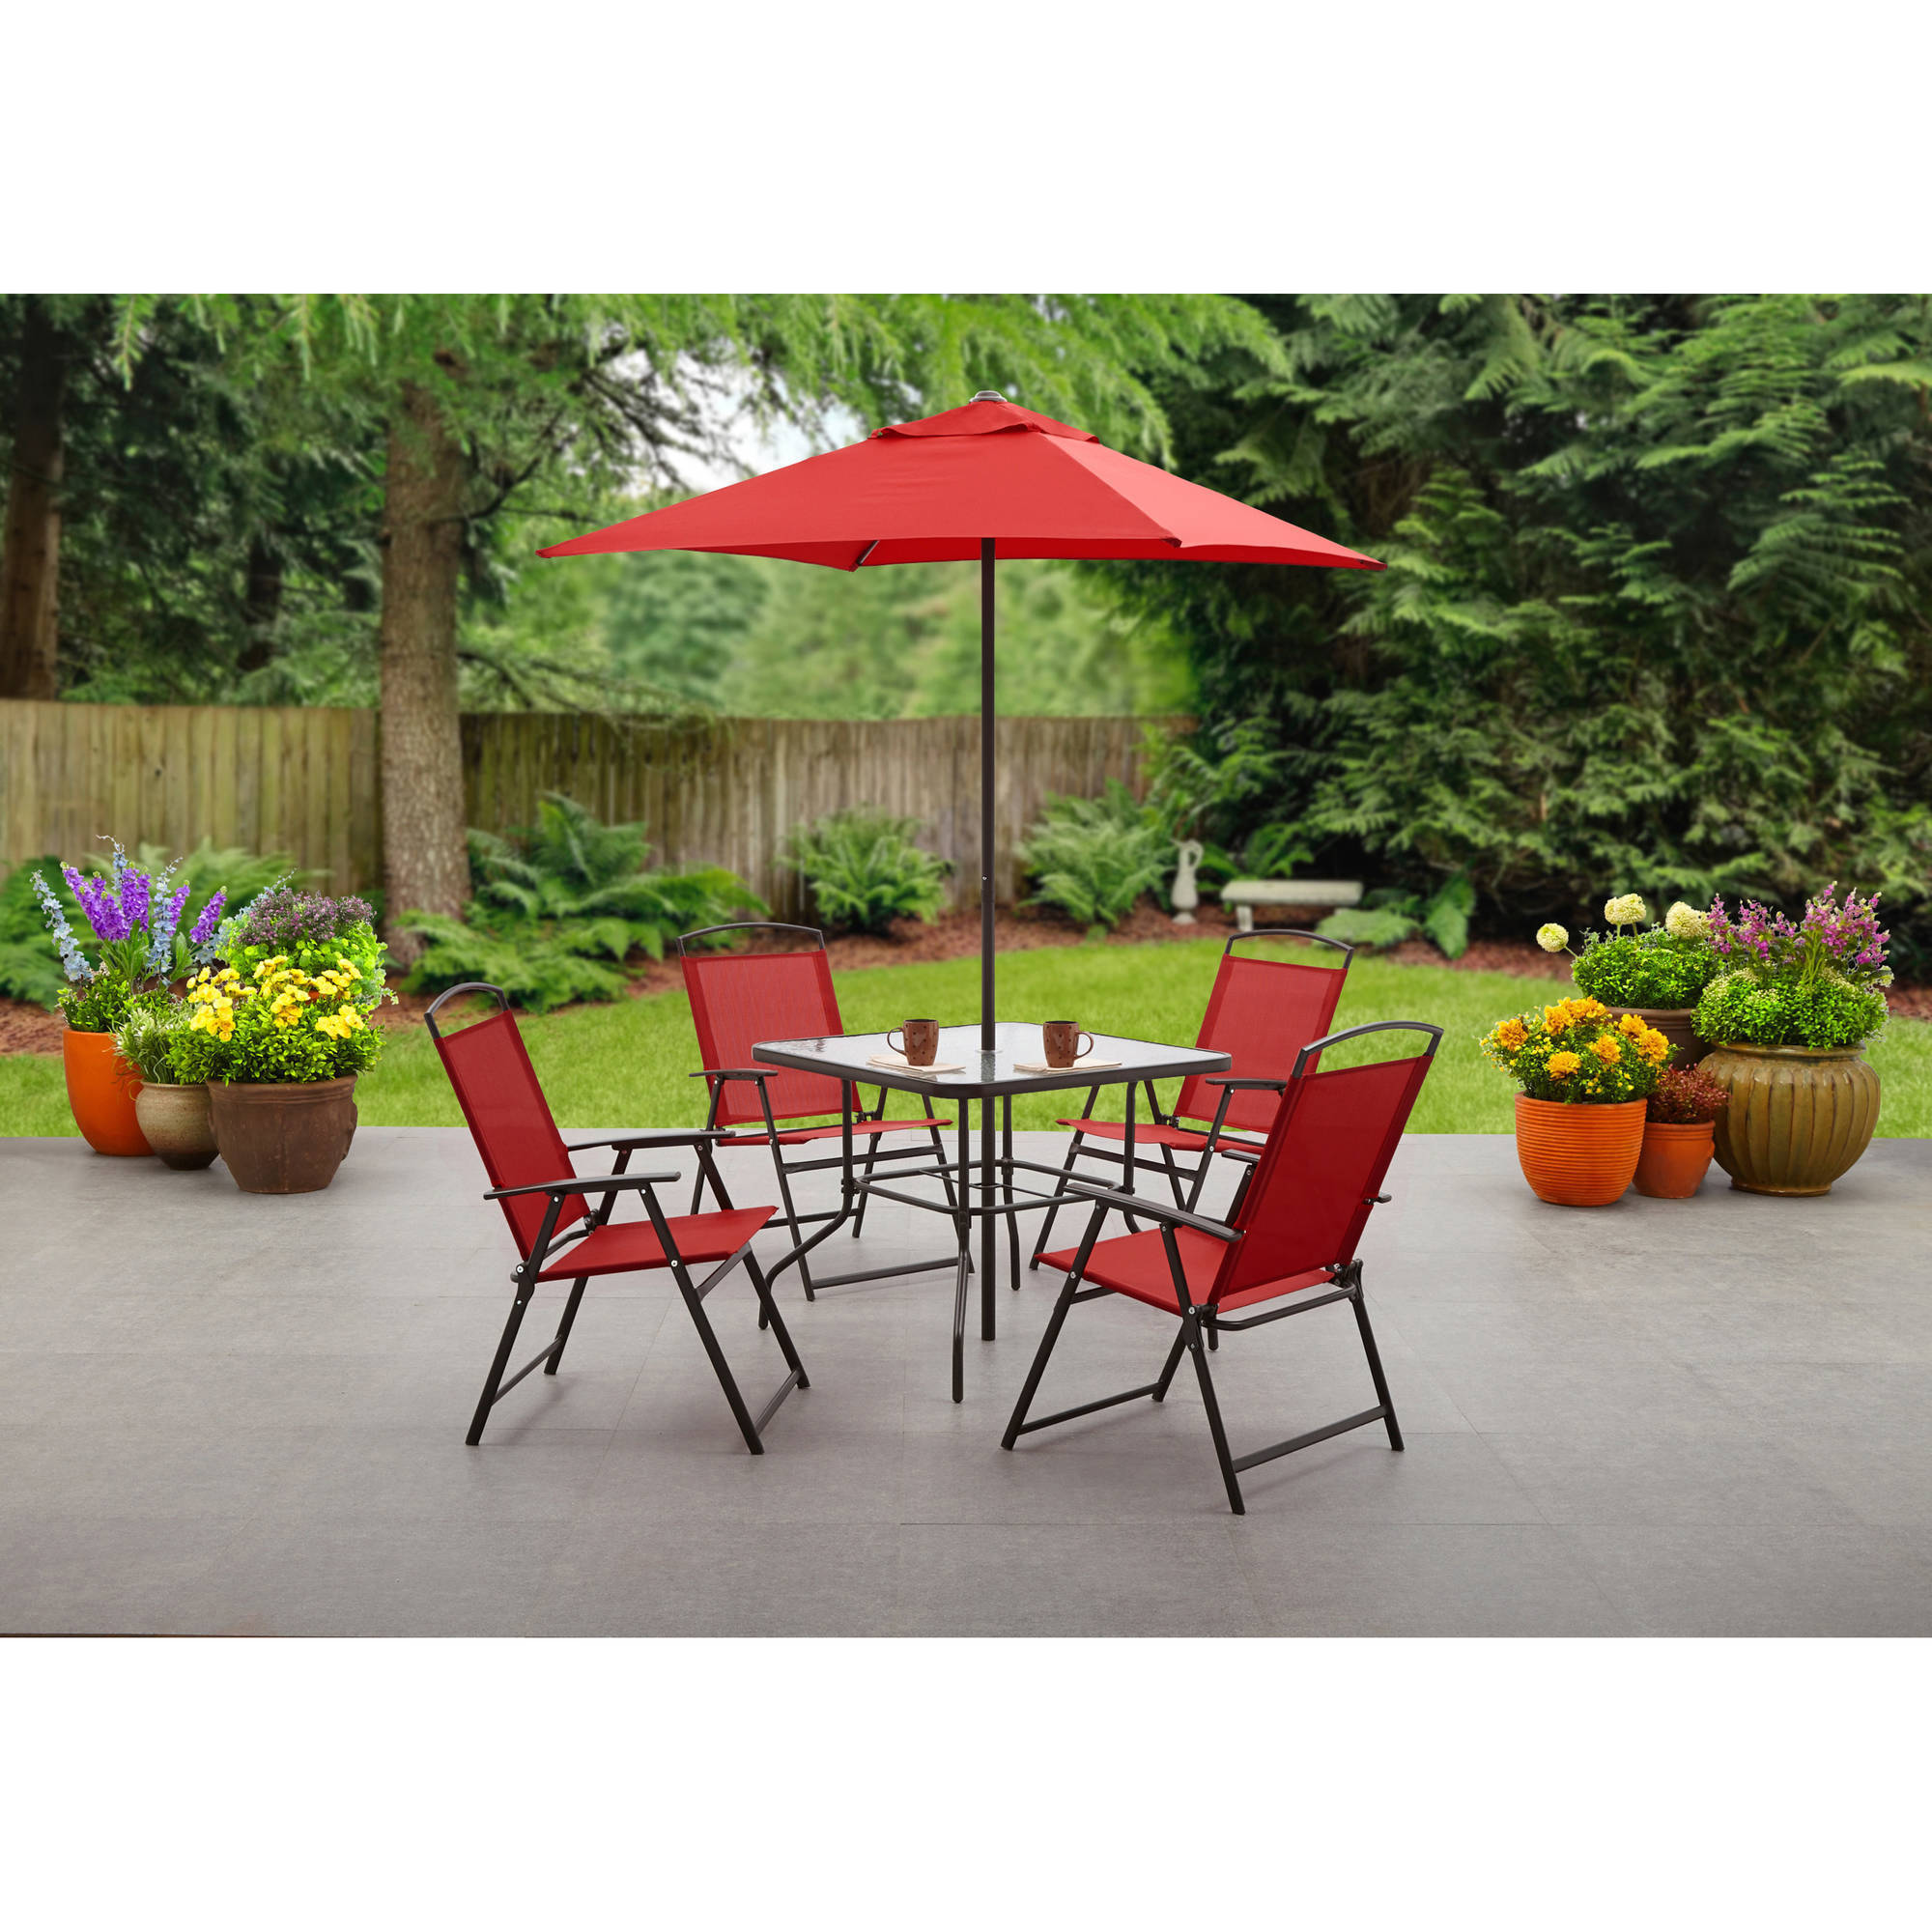 Mainstays Albany Lane 6-Piece Folding Dining Set, Multiple Colors